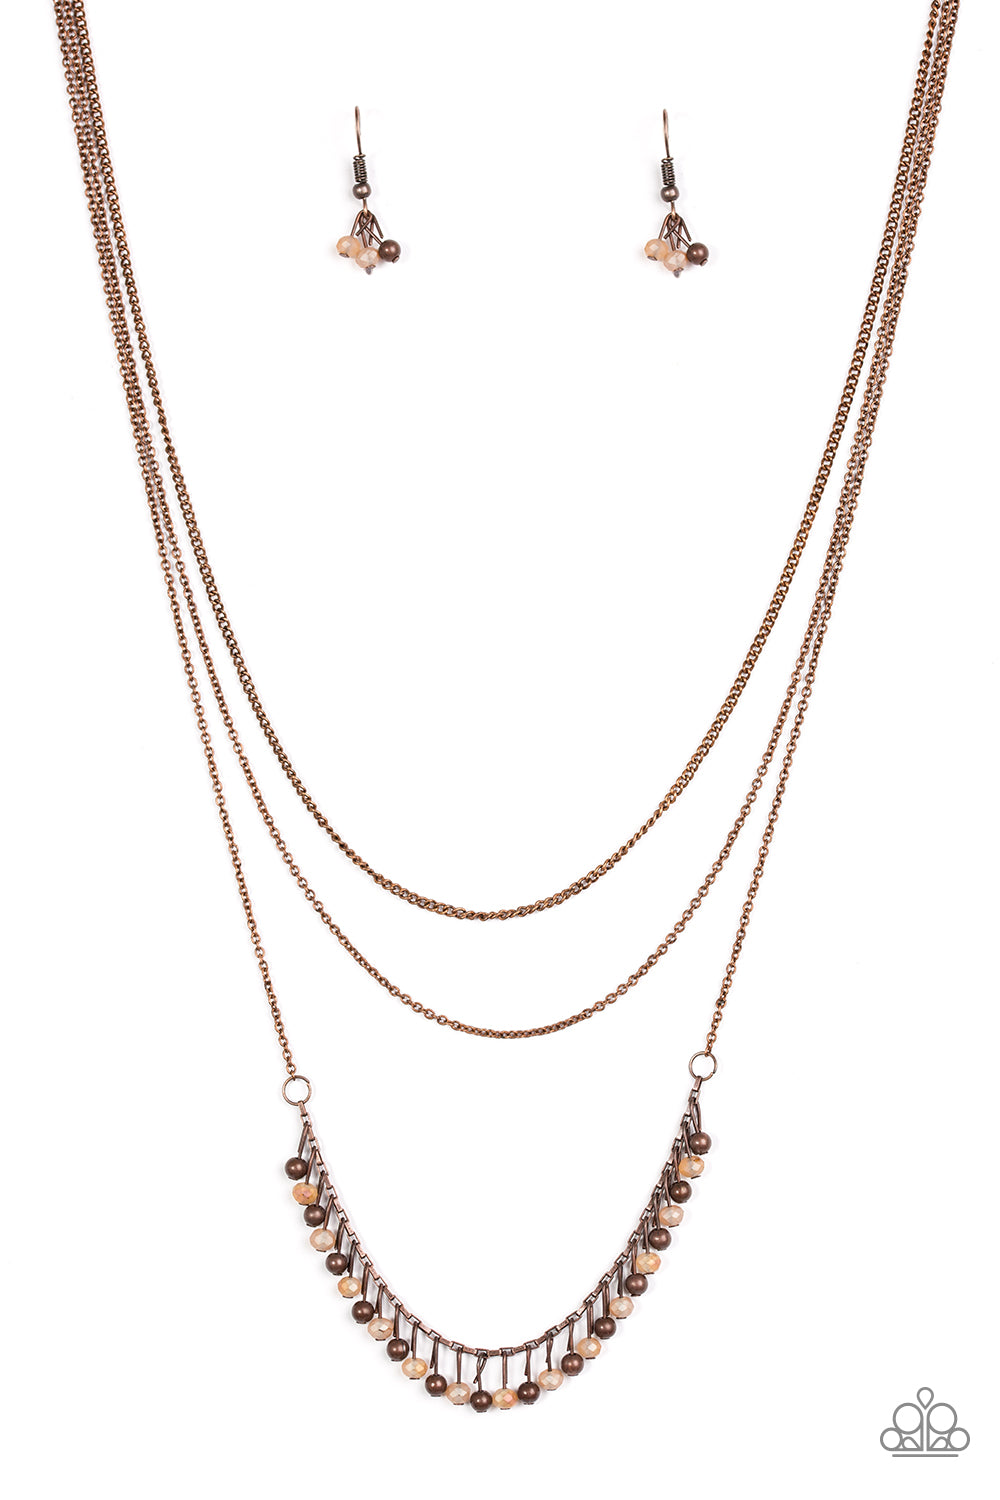 Twinkly Troves Copper Necklace